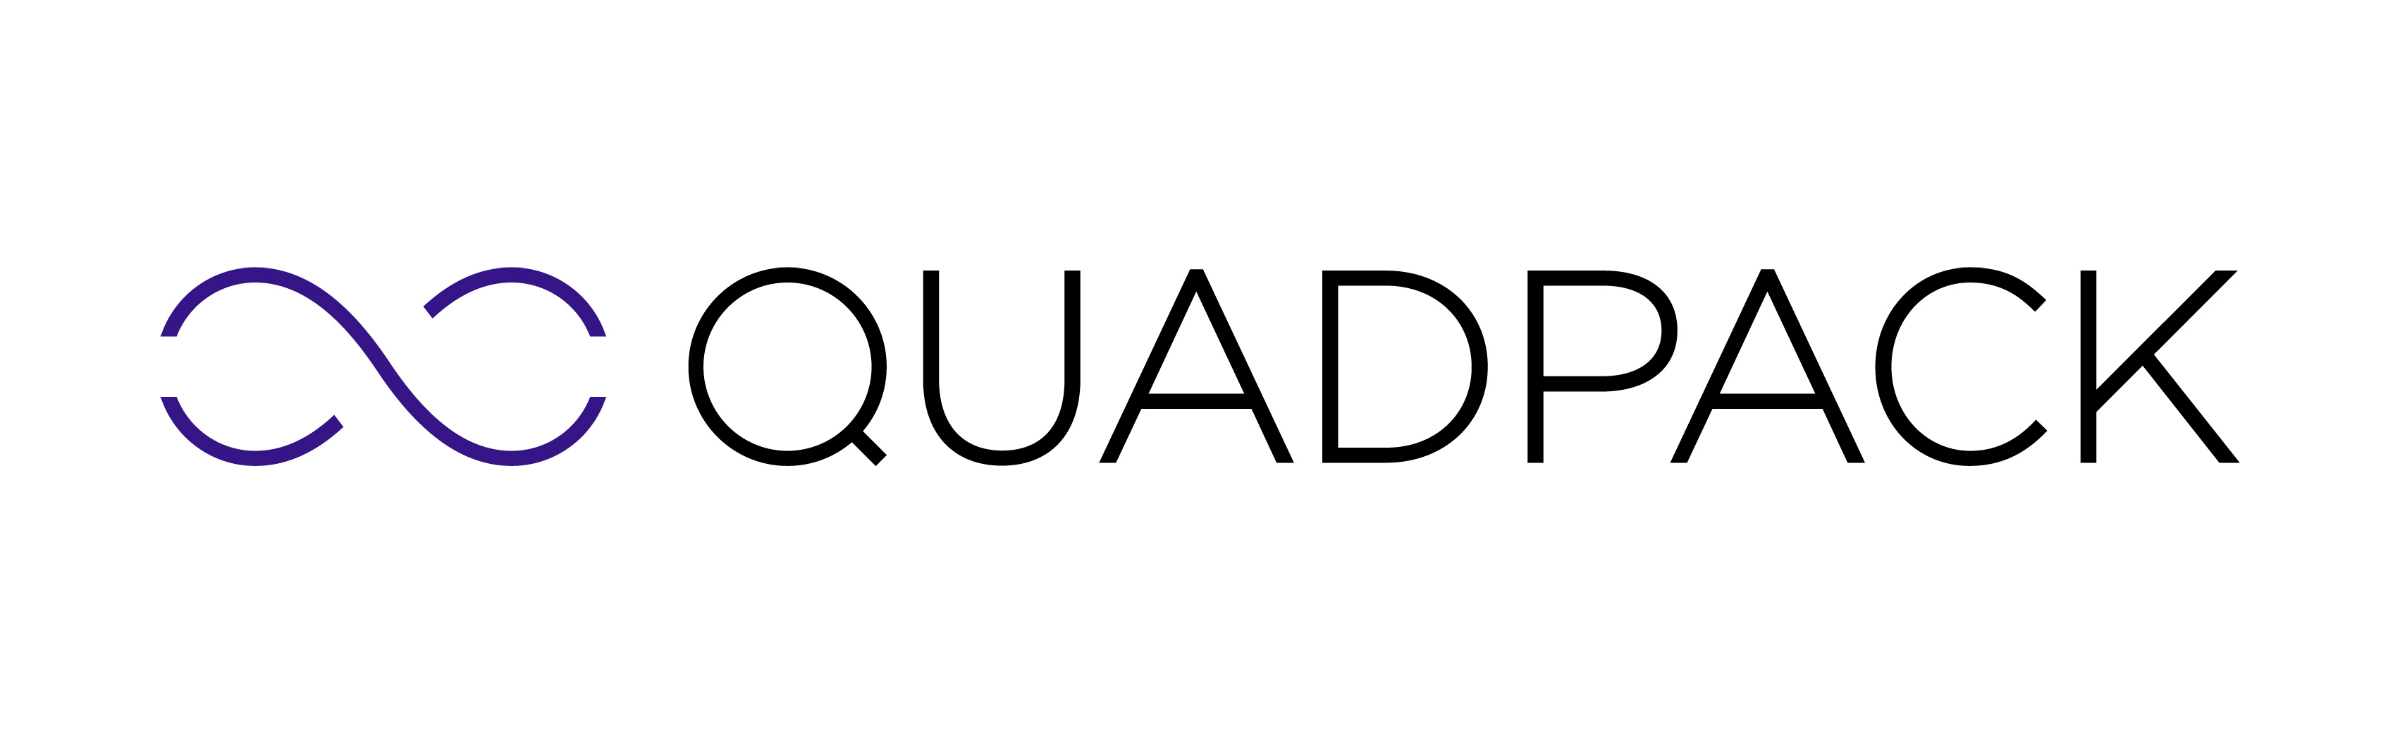 Quadpack Group